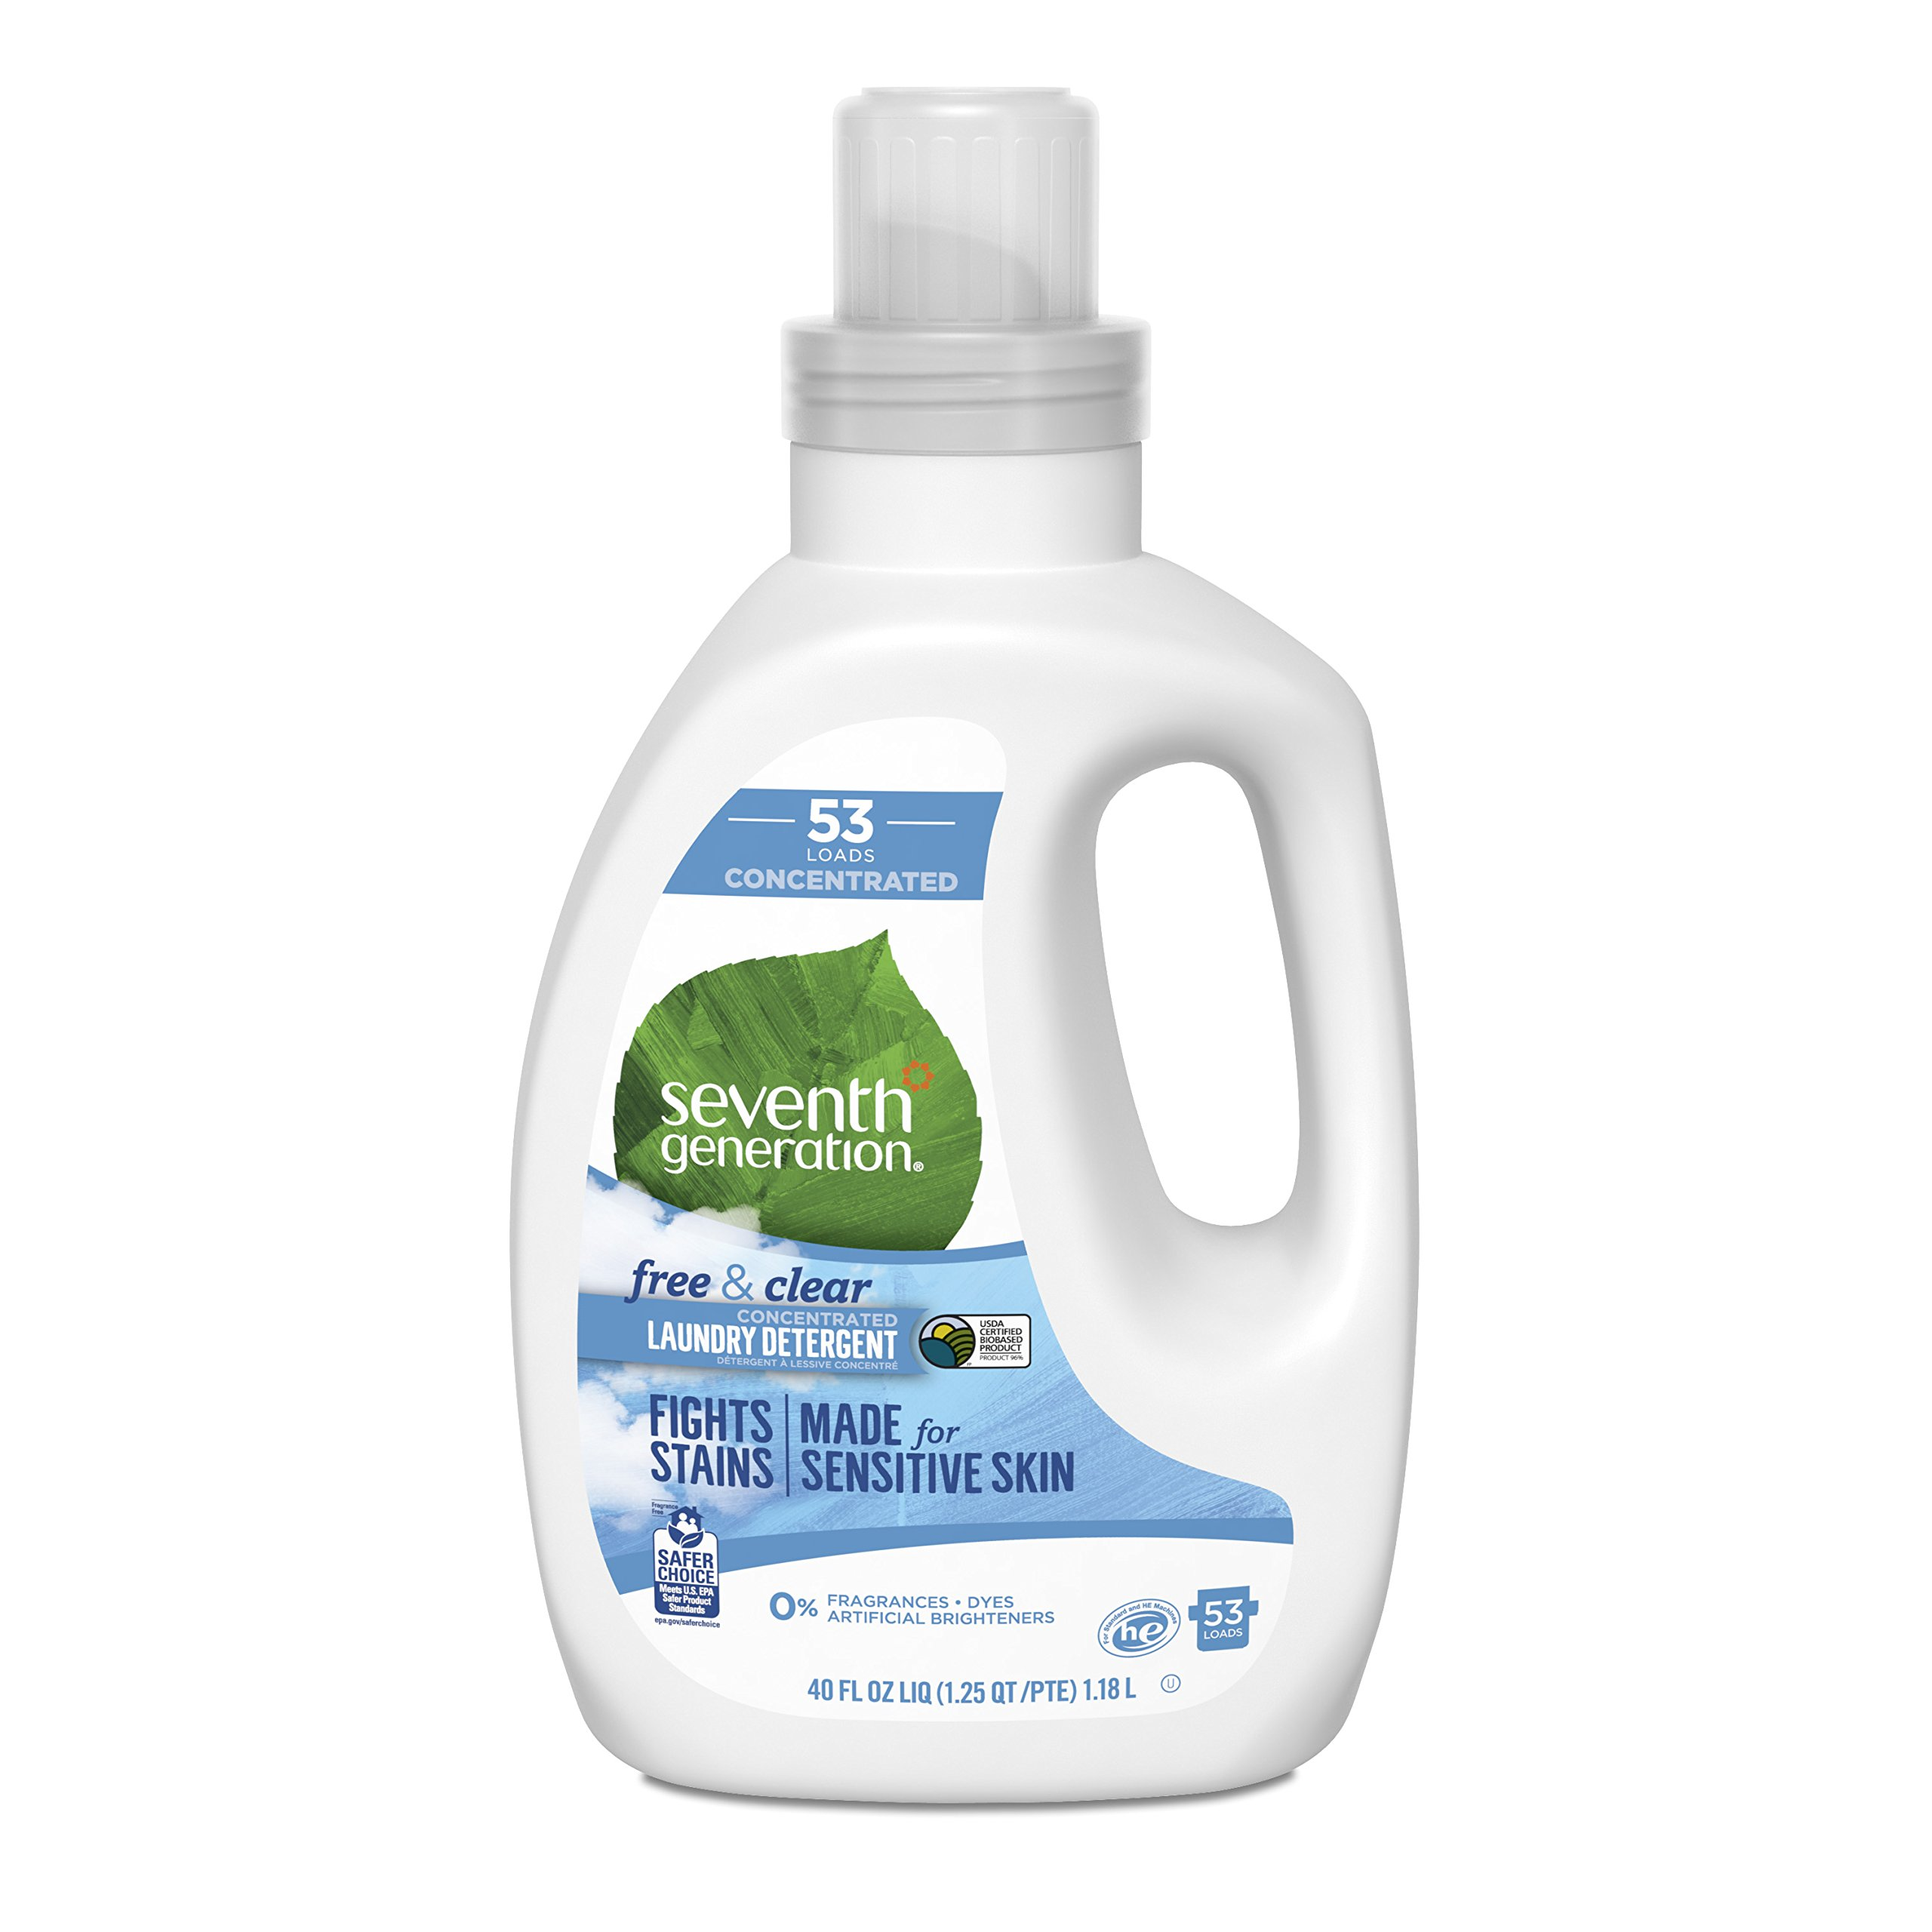 Seventh Generation Concentrated Laundry Detergent, Free & Clear, 40 oz (53 Loads) by Seventh Generation